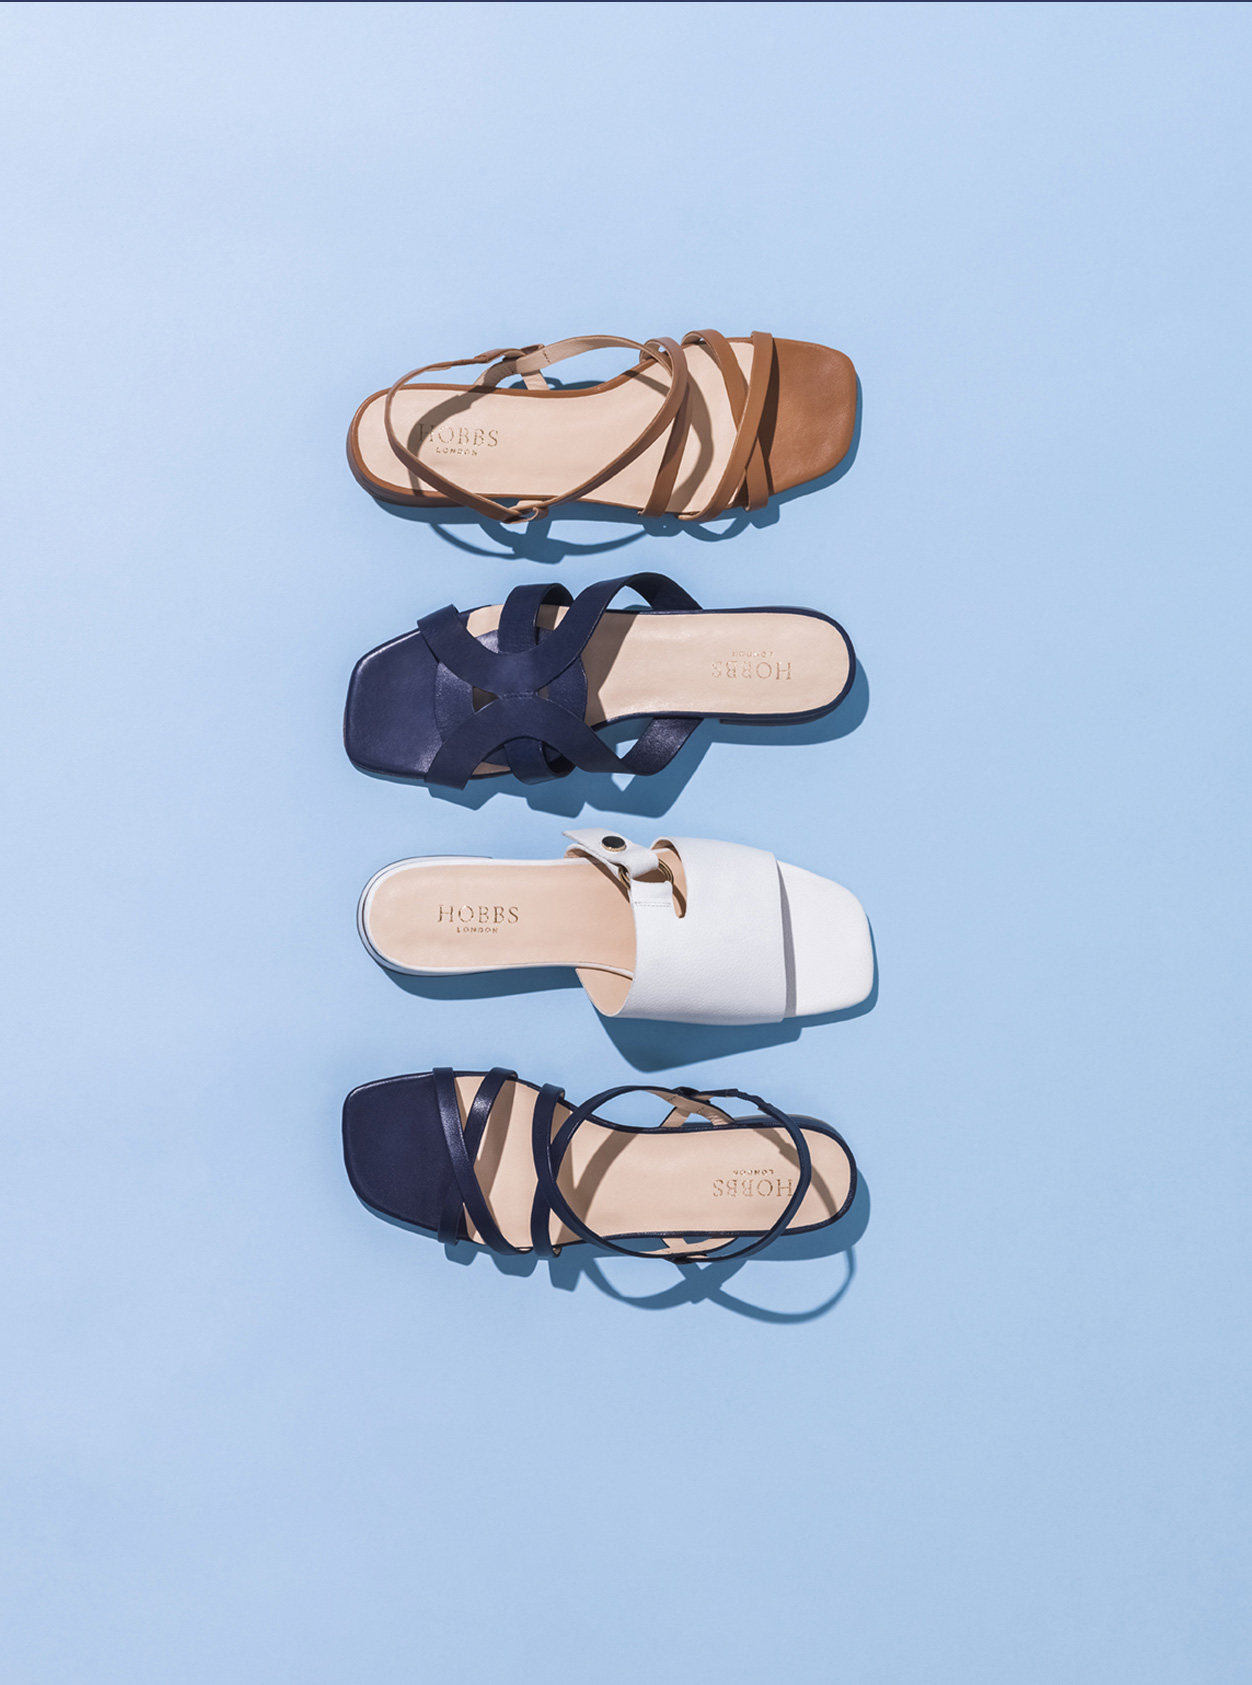 Four summer sandals from Hobbs against a blue background, from top to bottom: Brown sandal, dark blue sandal, white sandal, black sandal.